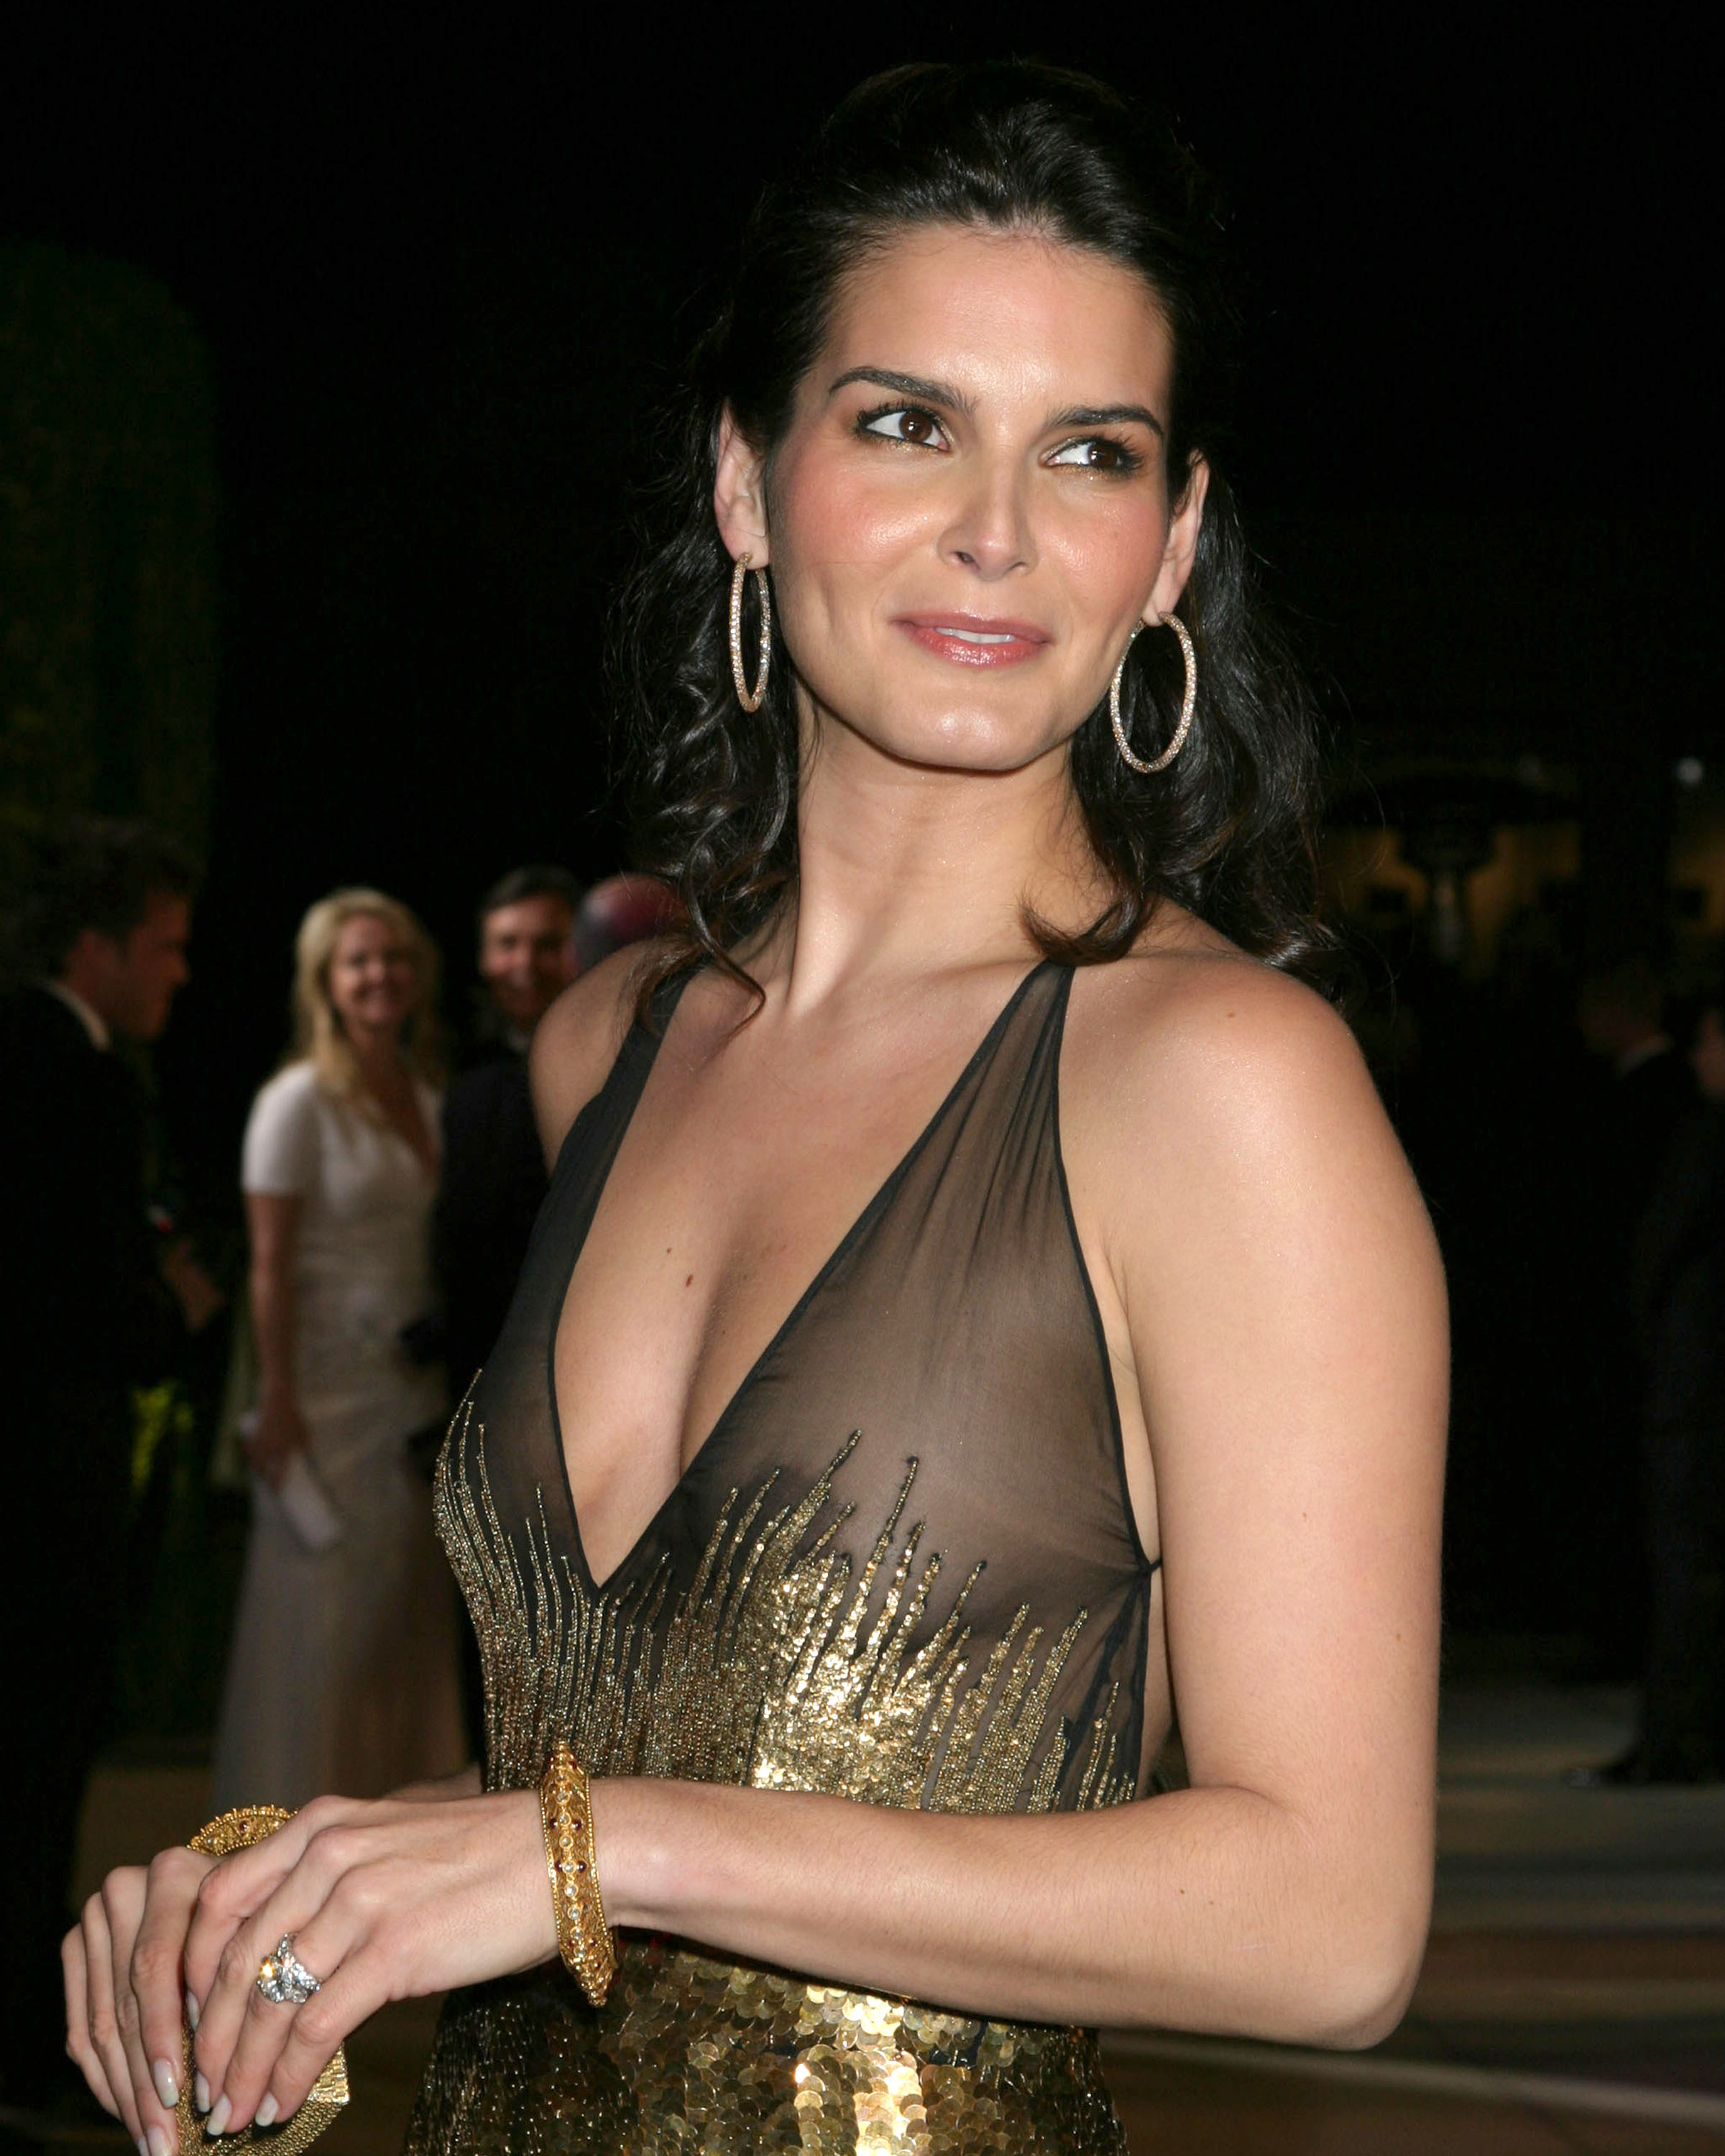 Angie harmon lawn dogs 4